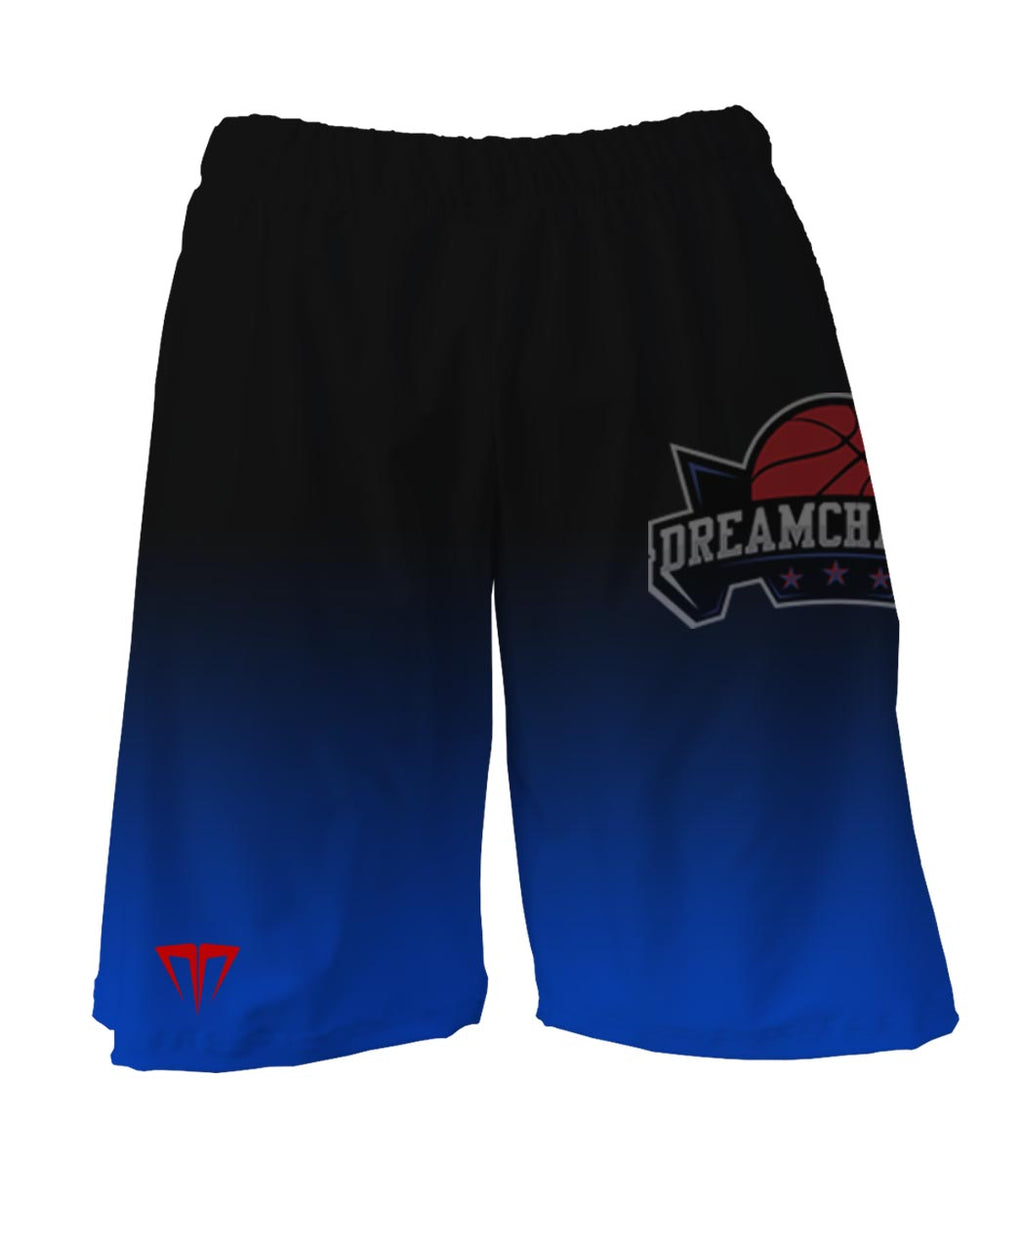 MG DC Training Shorts